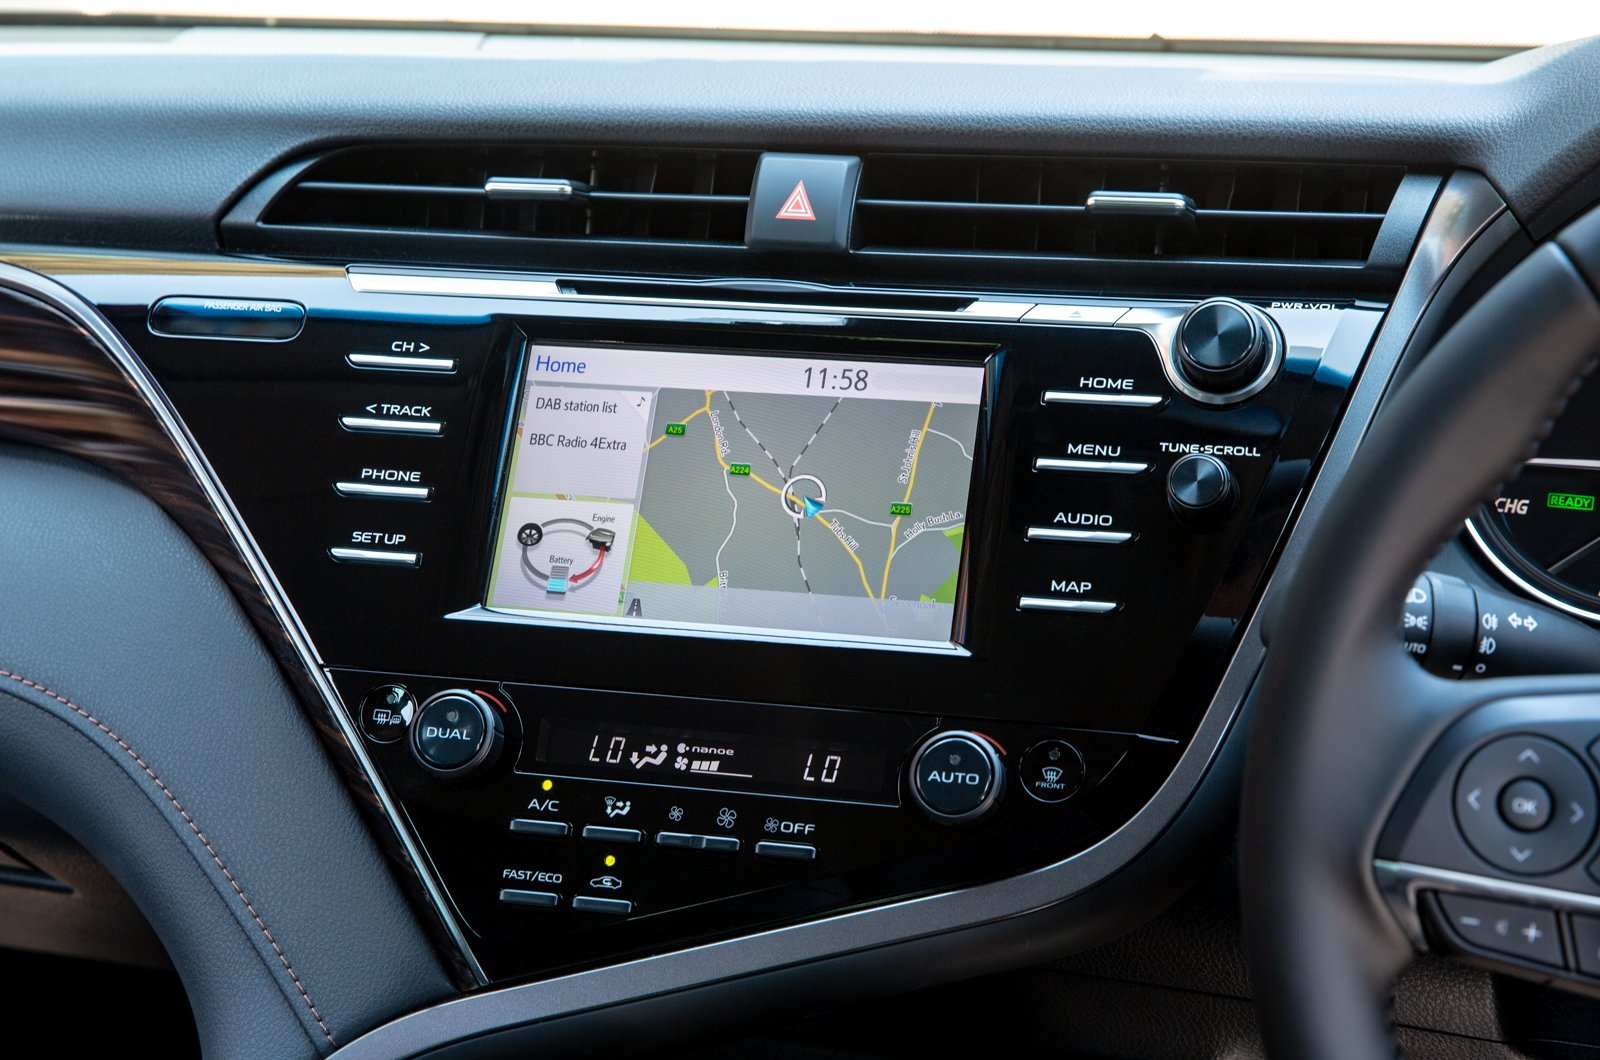 2019 Toyota Camry centre console